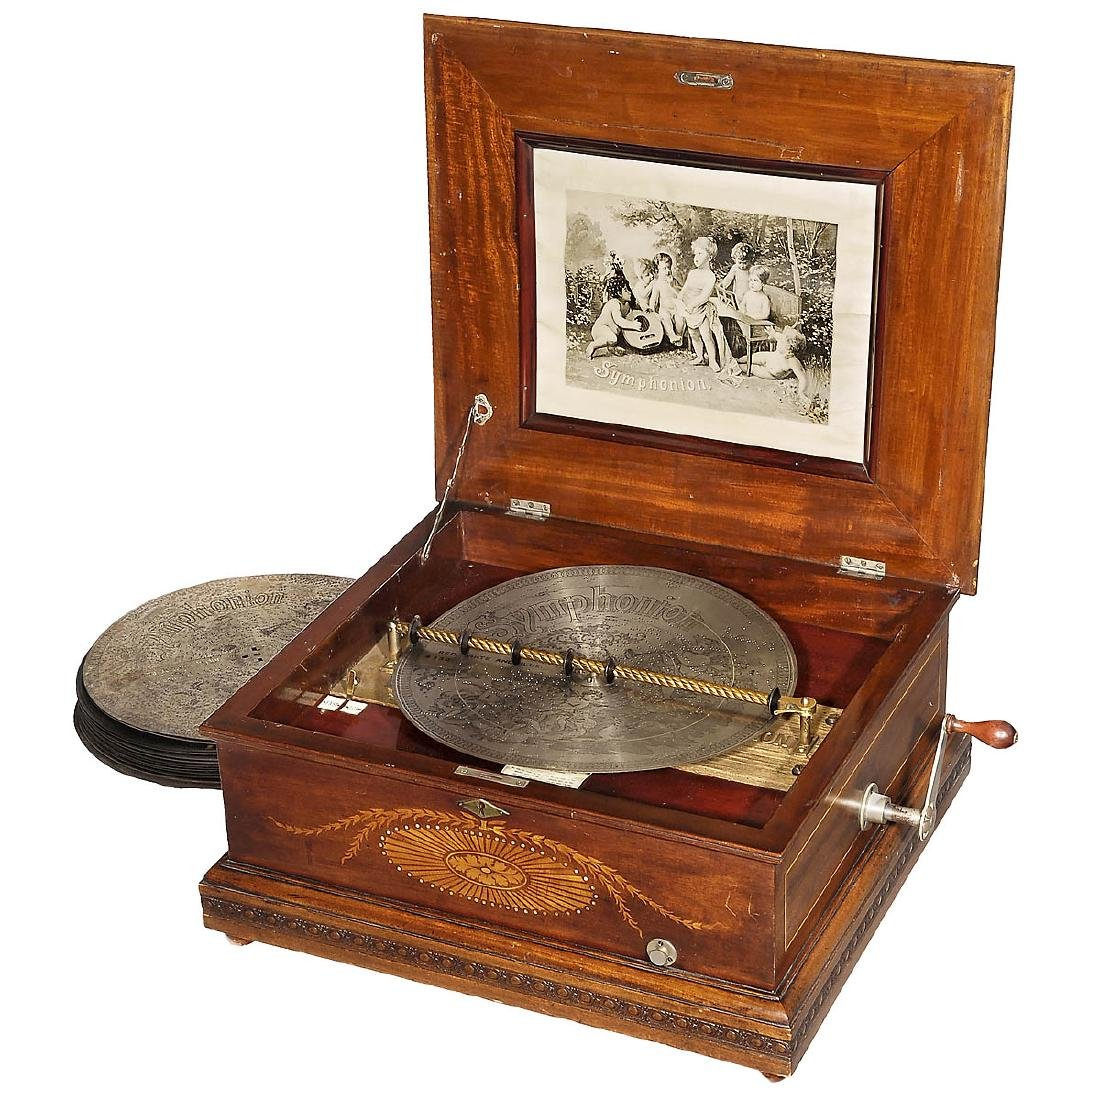 Imperial Symphonion Disc Music Box No. 343, c. 1895